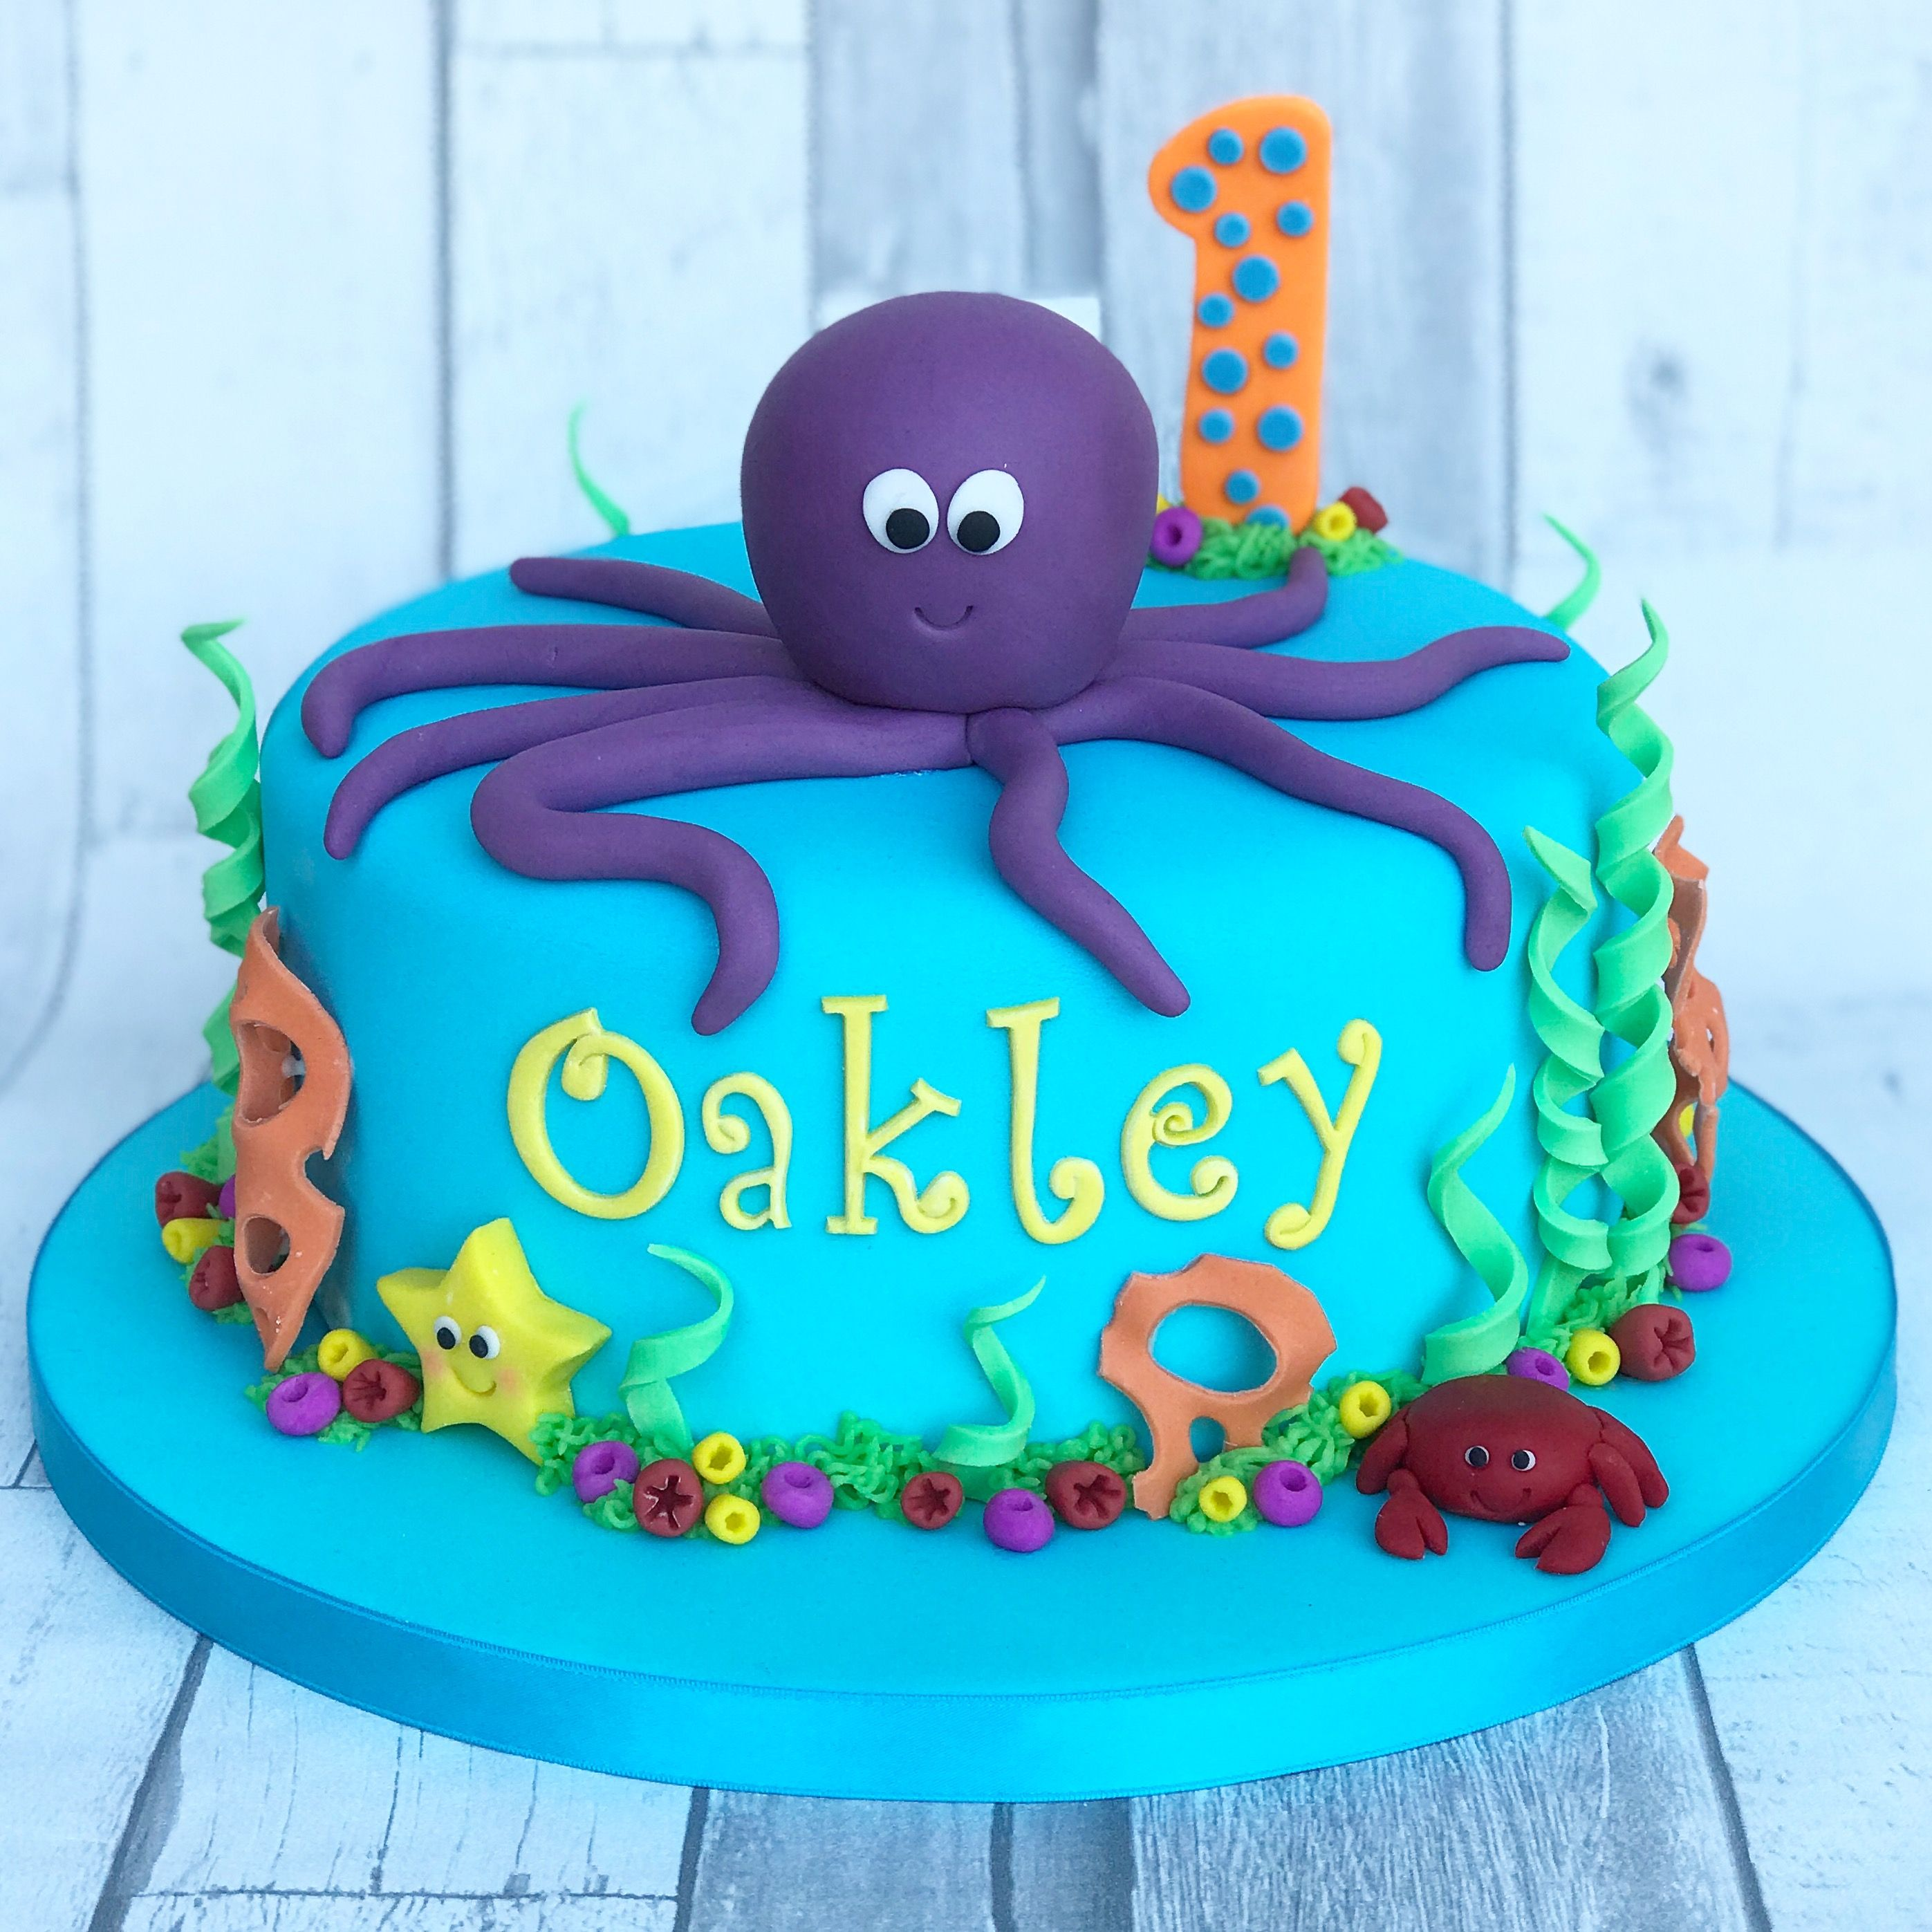 A Under The Sea Cake Complete With Purple Octopus Crab Star Fish Coral Ocean Birthday Cakes Boy Birthday Cake Boys First Birthday Cake